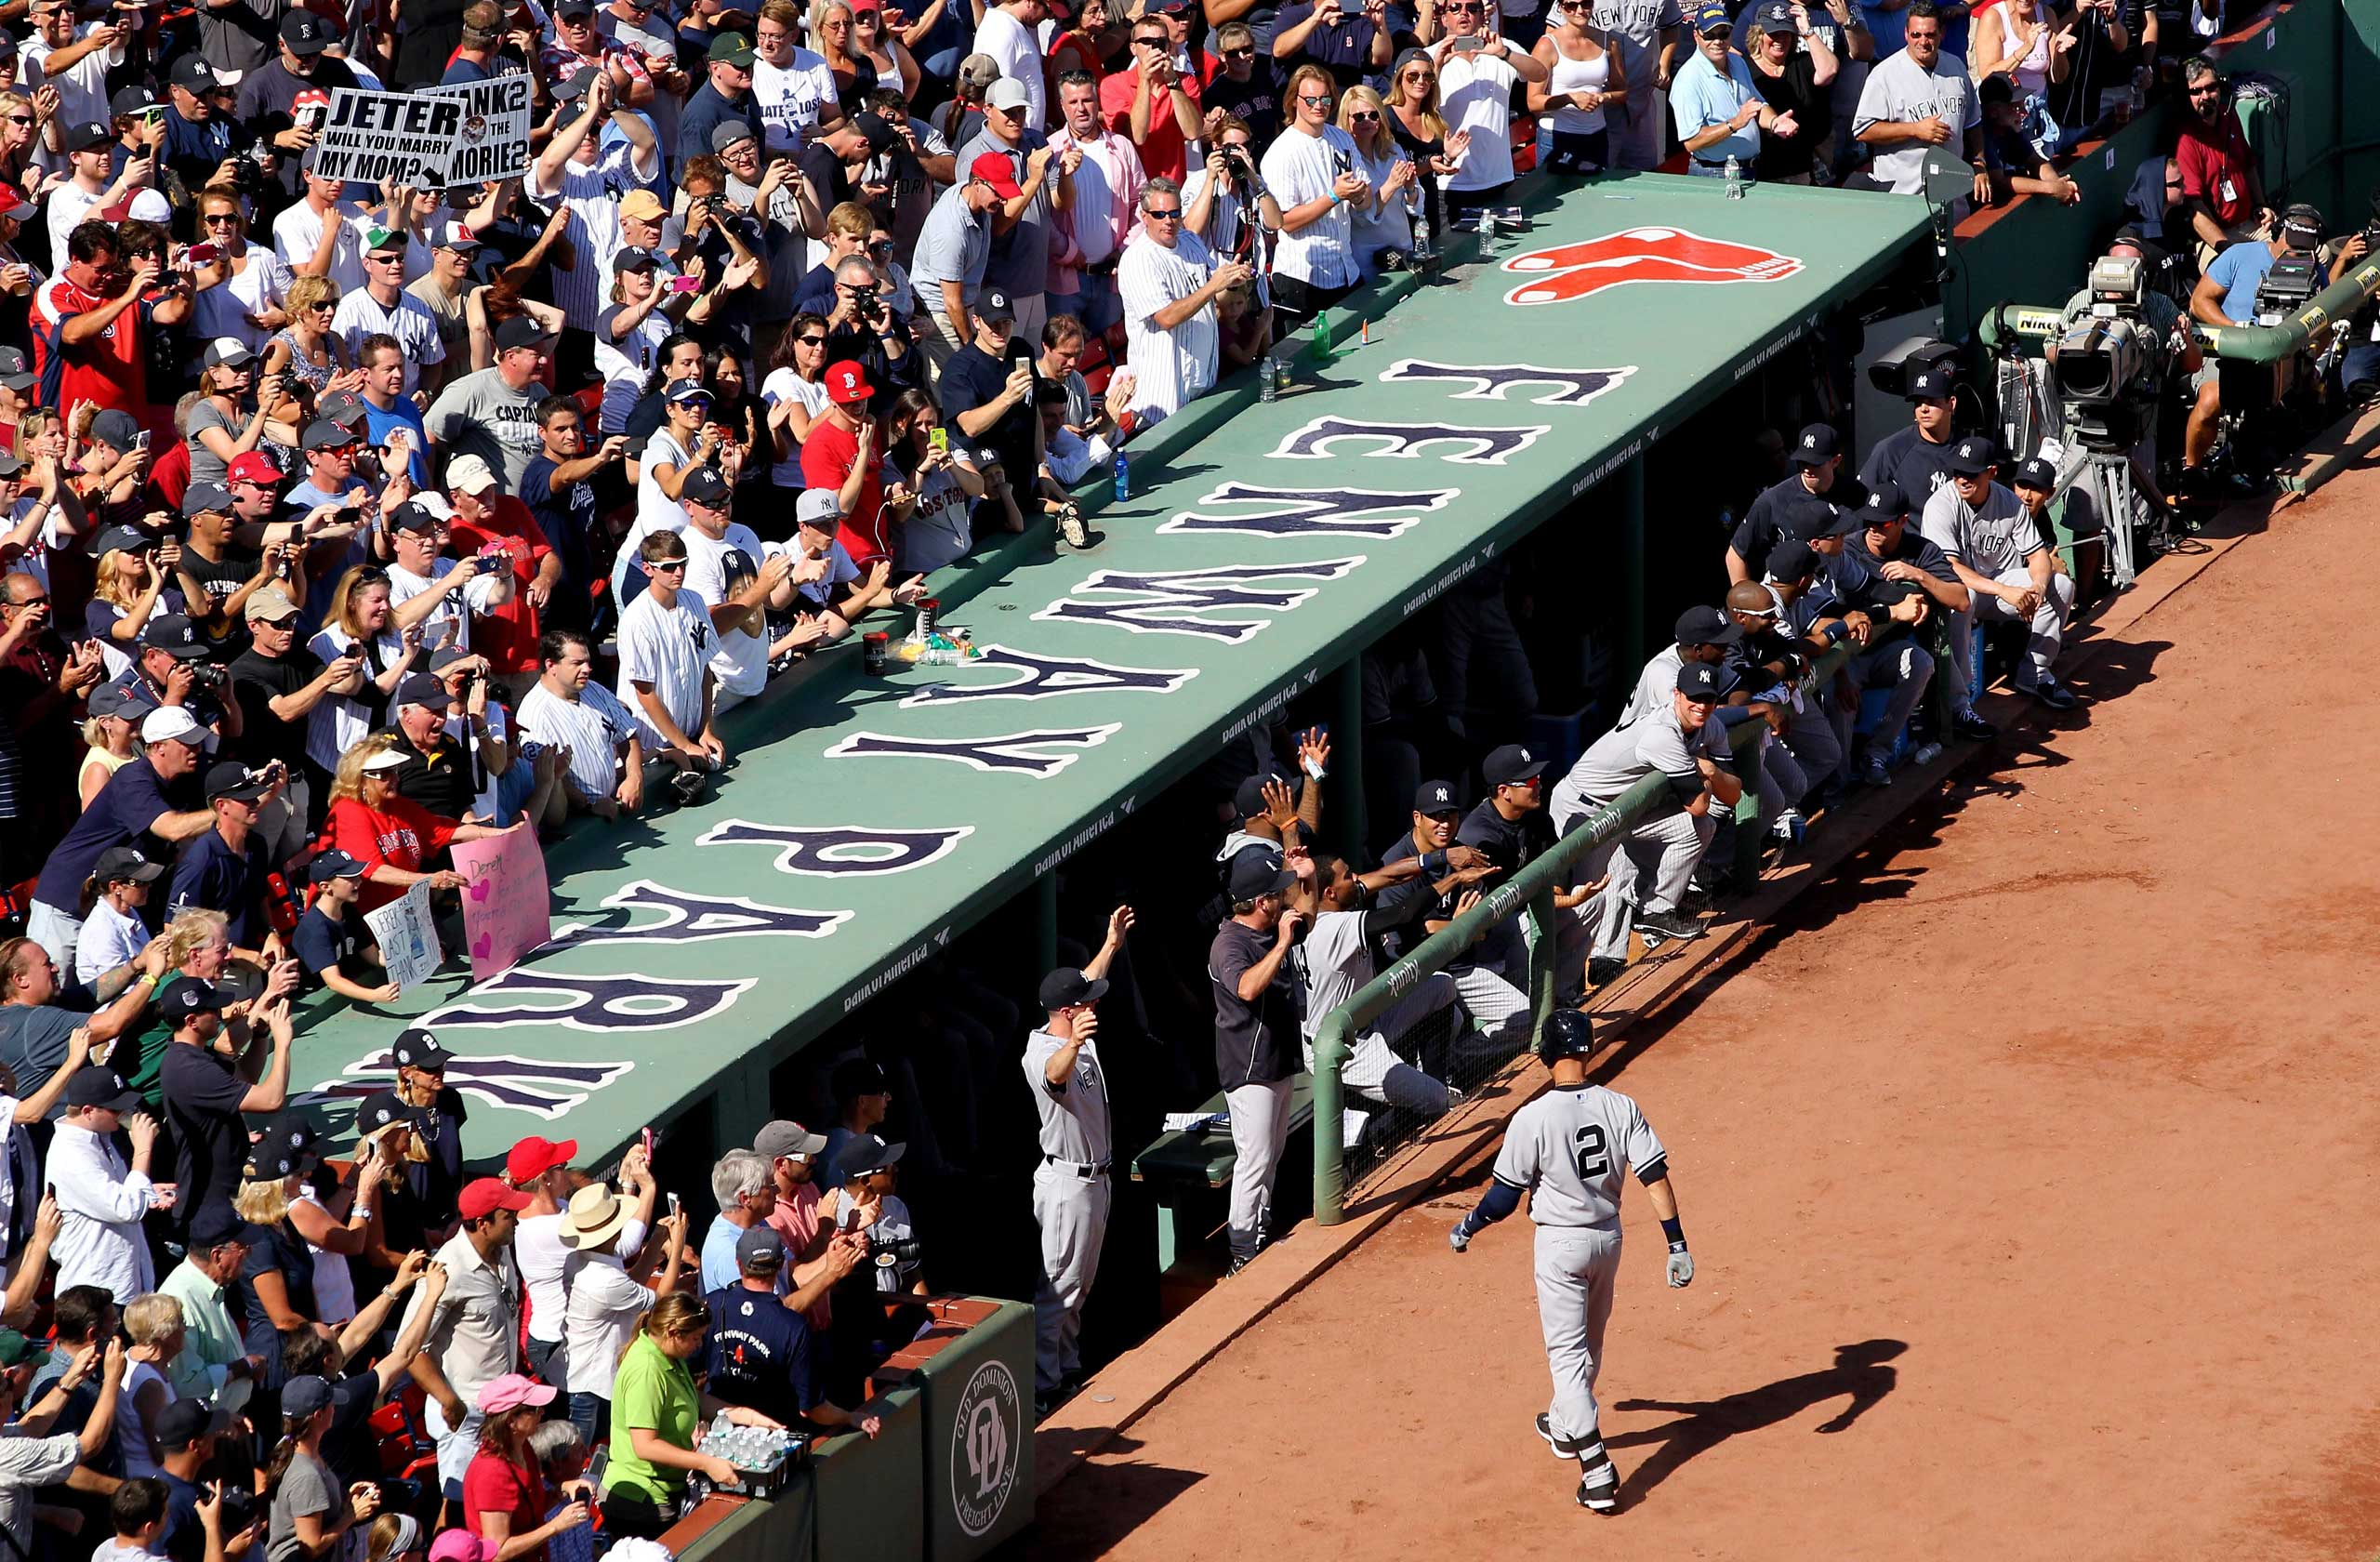 Sept. 28, 2014. Derek Jeter #2 of the New York Yankees returns to the dugout after batting in the first inning against the Boston Red Sox during the last game of the season at Fenway Park in Boston, Massachusetts.